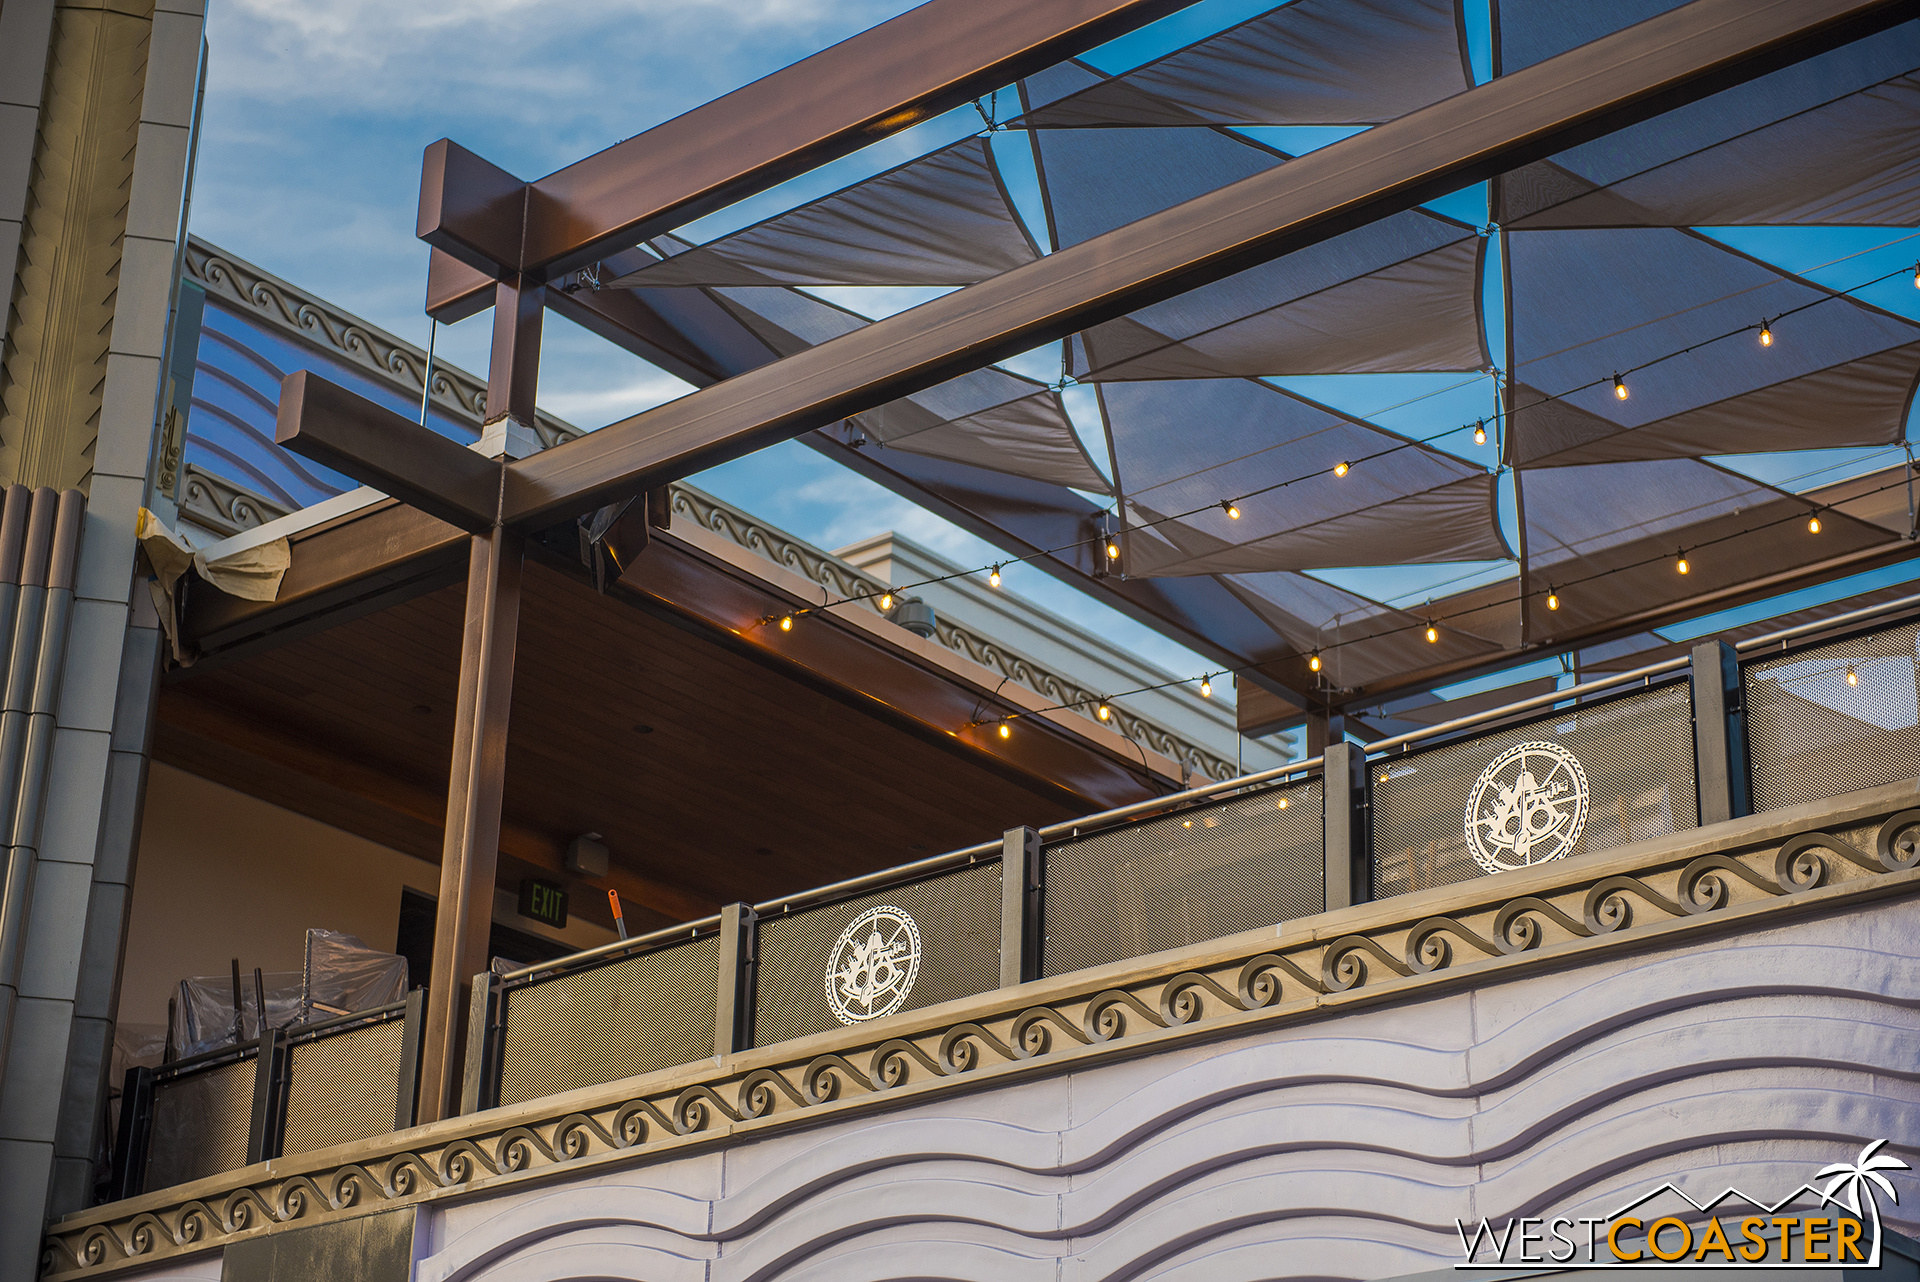 Ballast Point will also have outdoor seating over the roof of Wetzel's Pretzels as well.